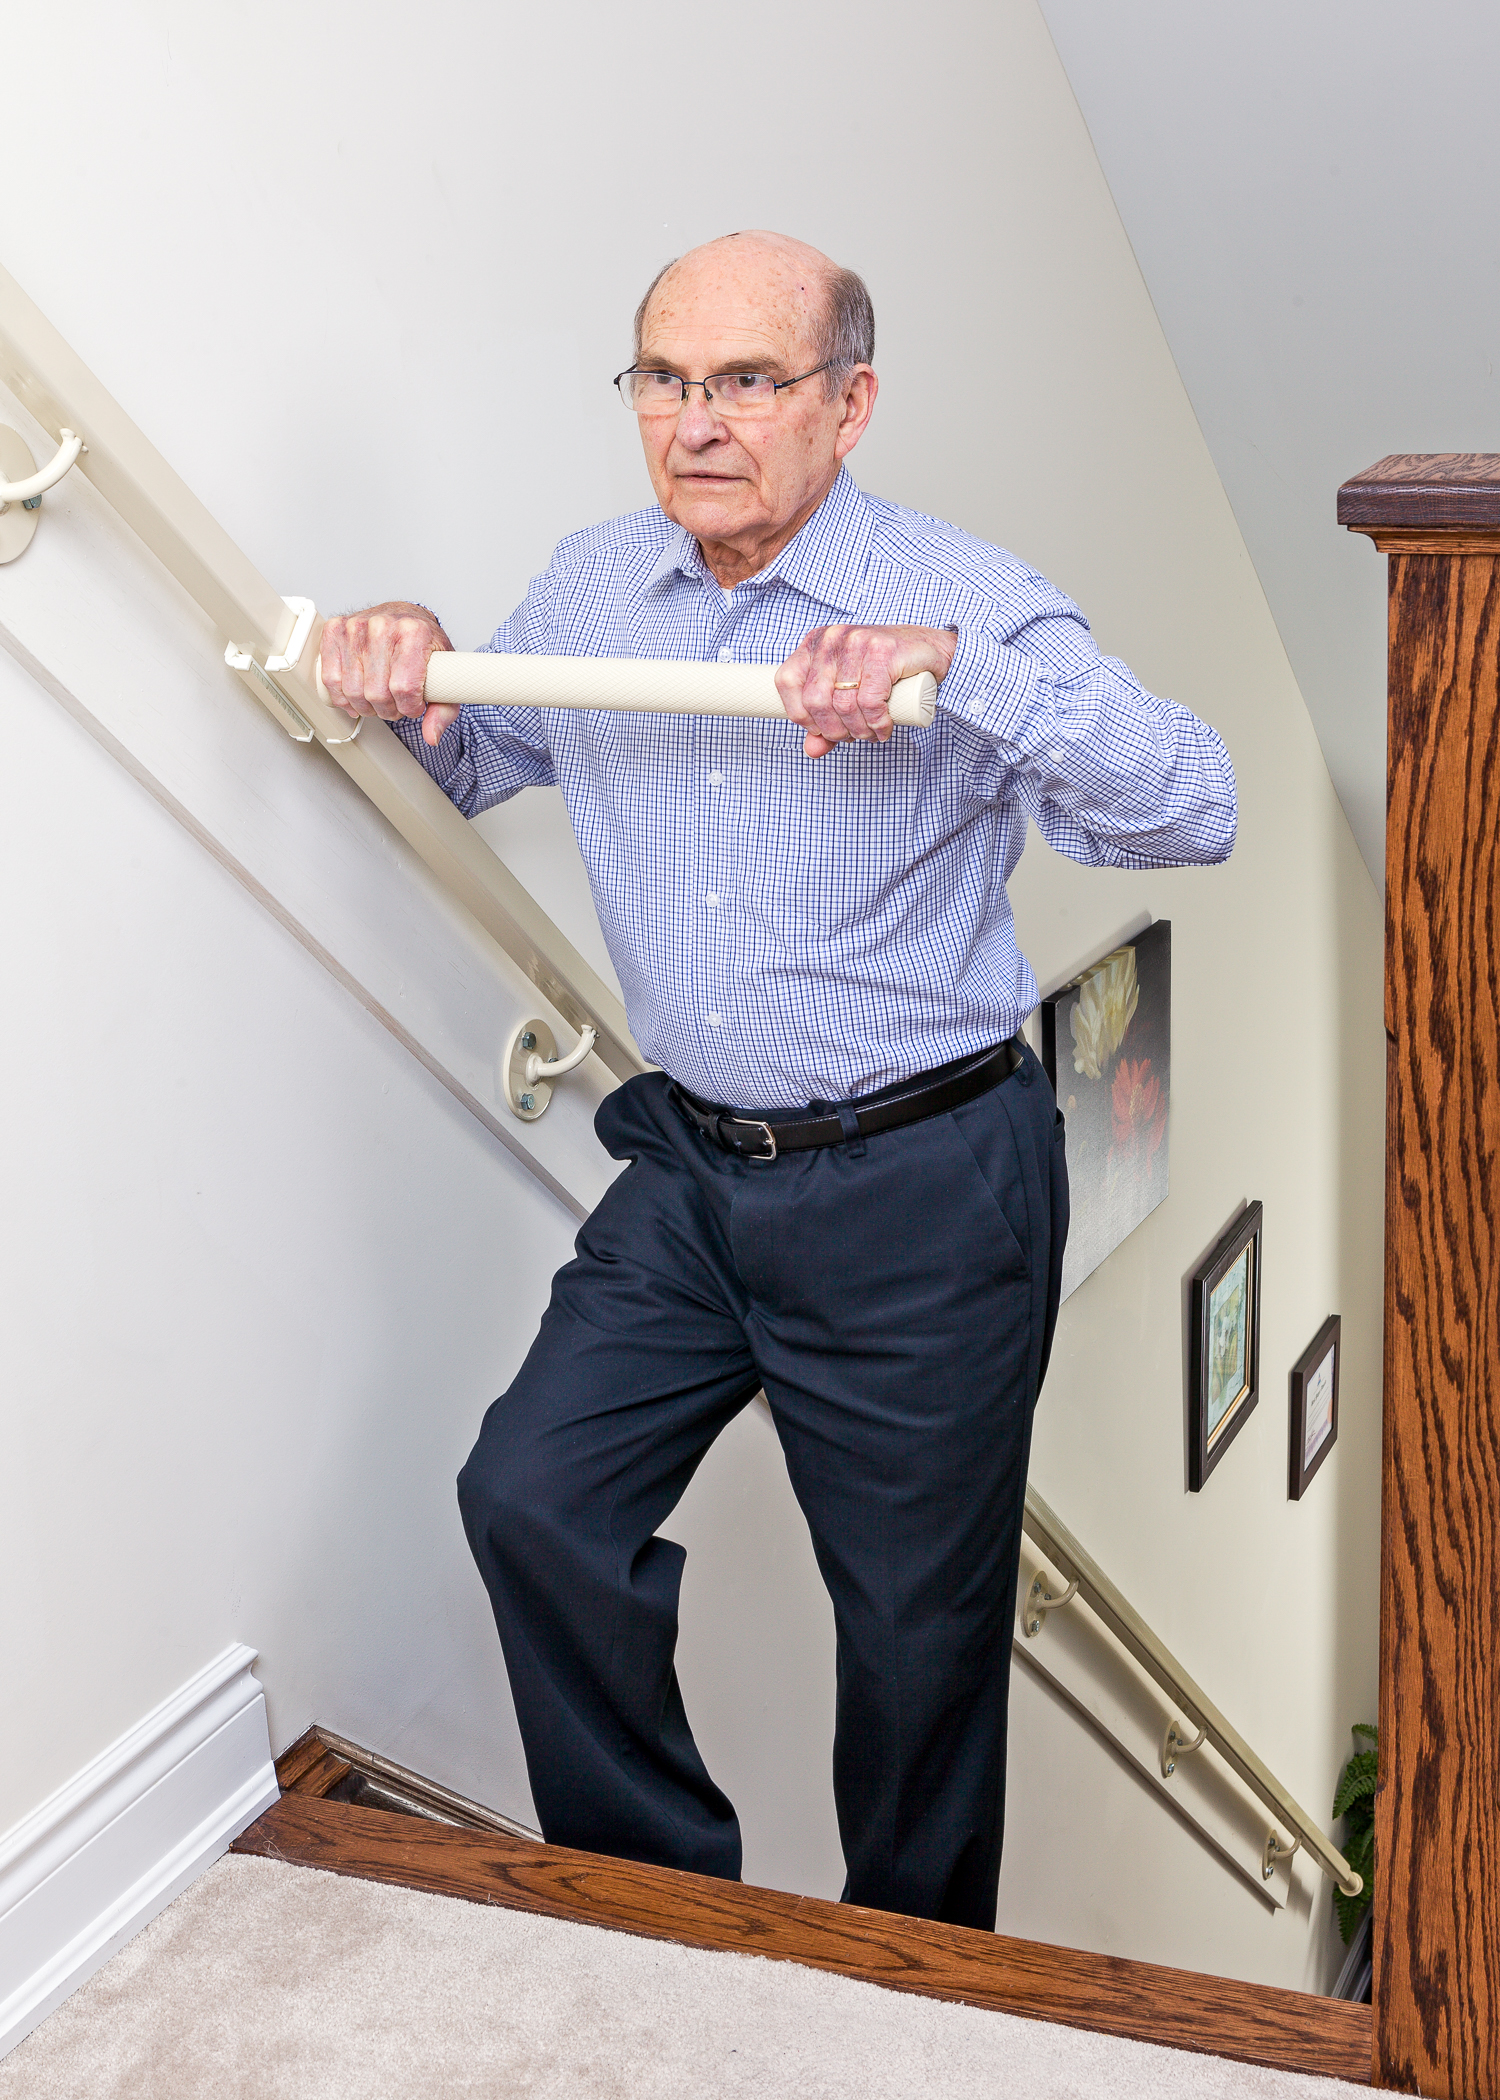 Wellwise by Shoppers Drugmart. Feel confident and safe in your home with StairSteady. Man with StairSteady product going up the stairs.